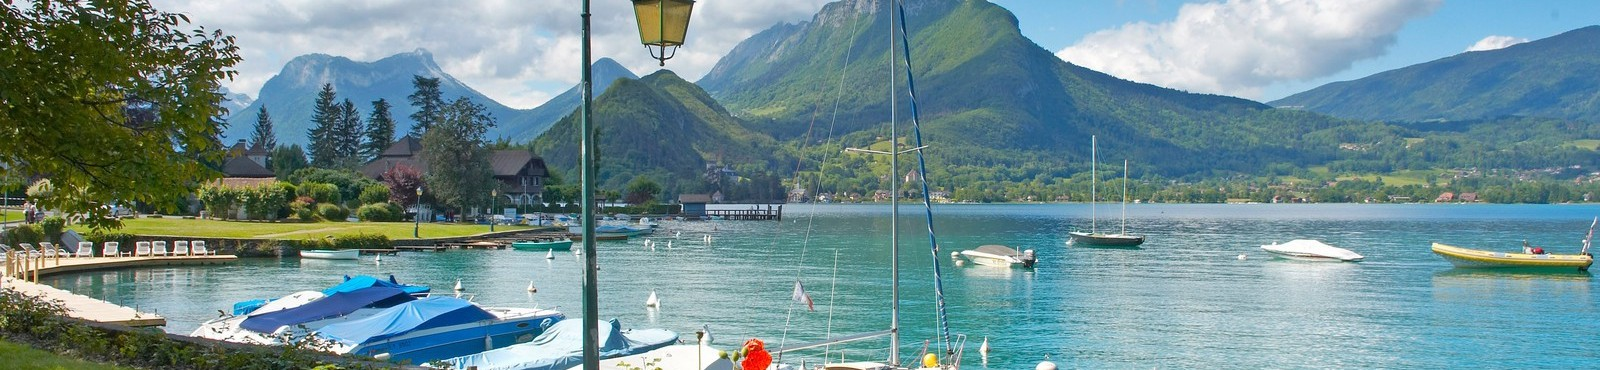 Annecy Lake in Luxury